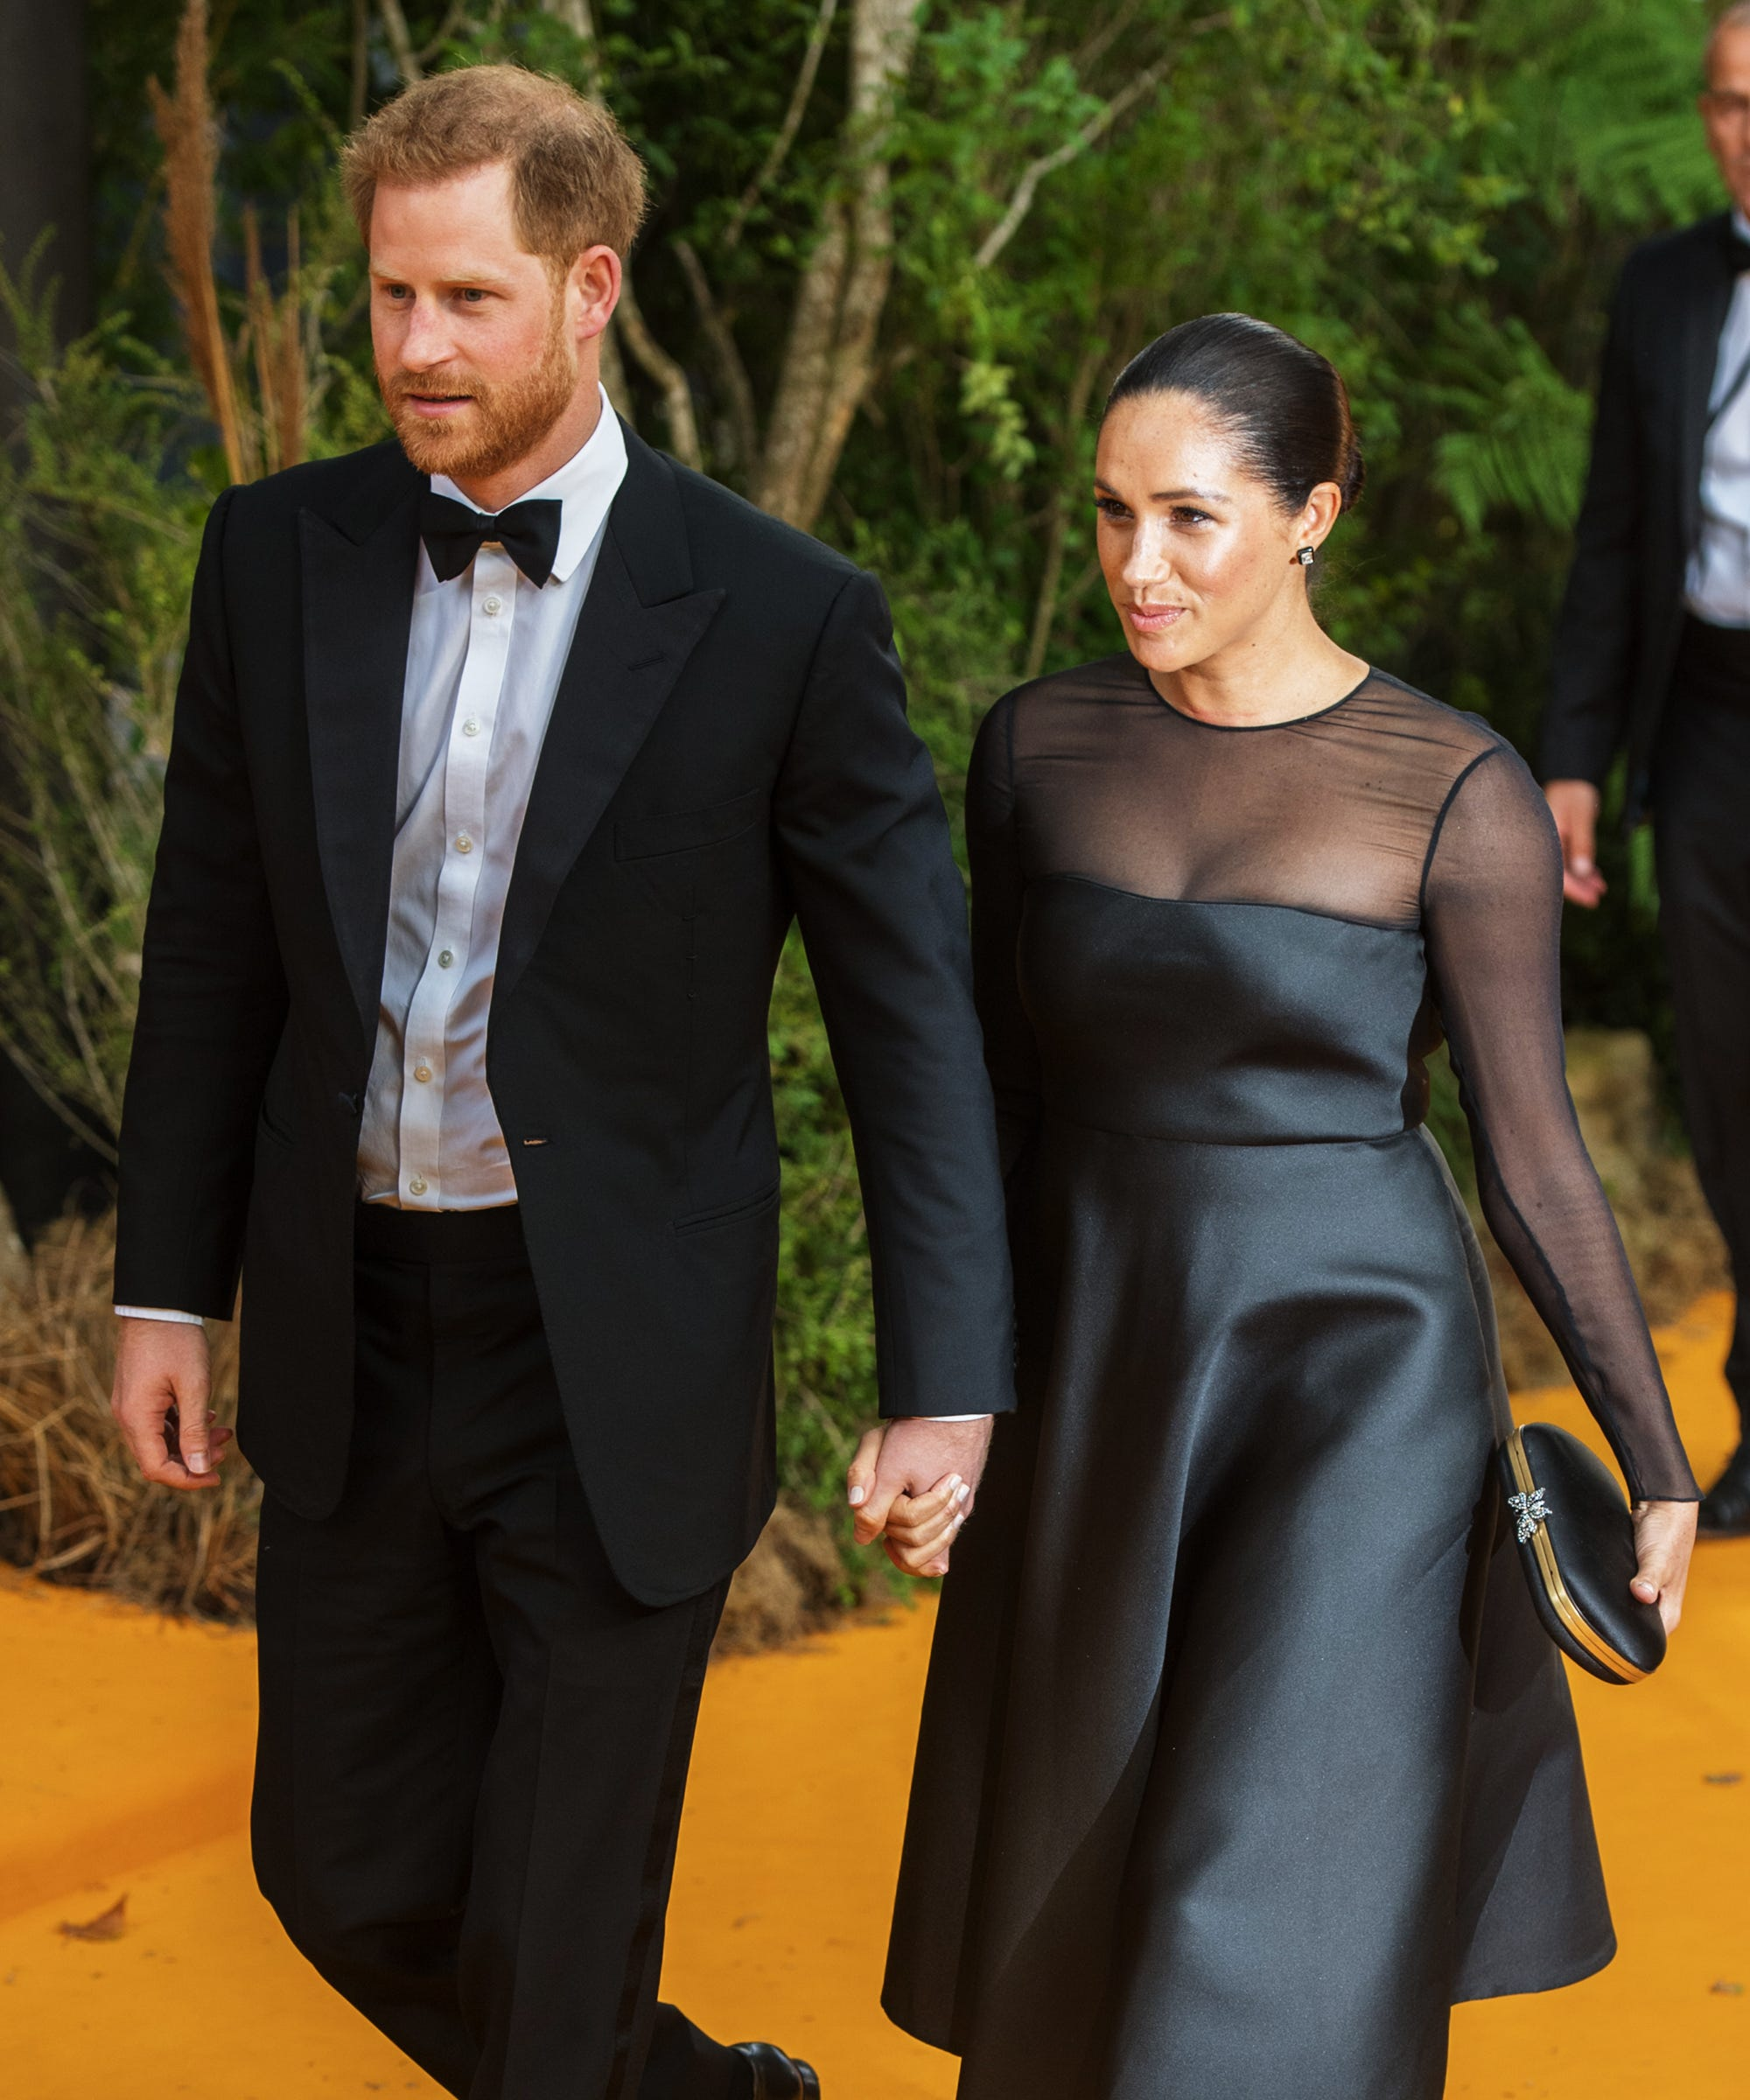 Prince Harry Responded To Backlash Against He & Meghan Markle's Private Jet Use